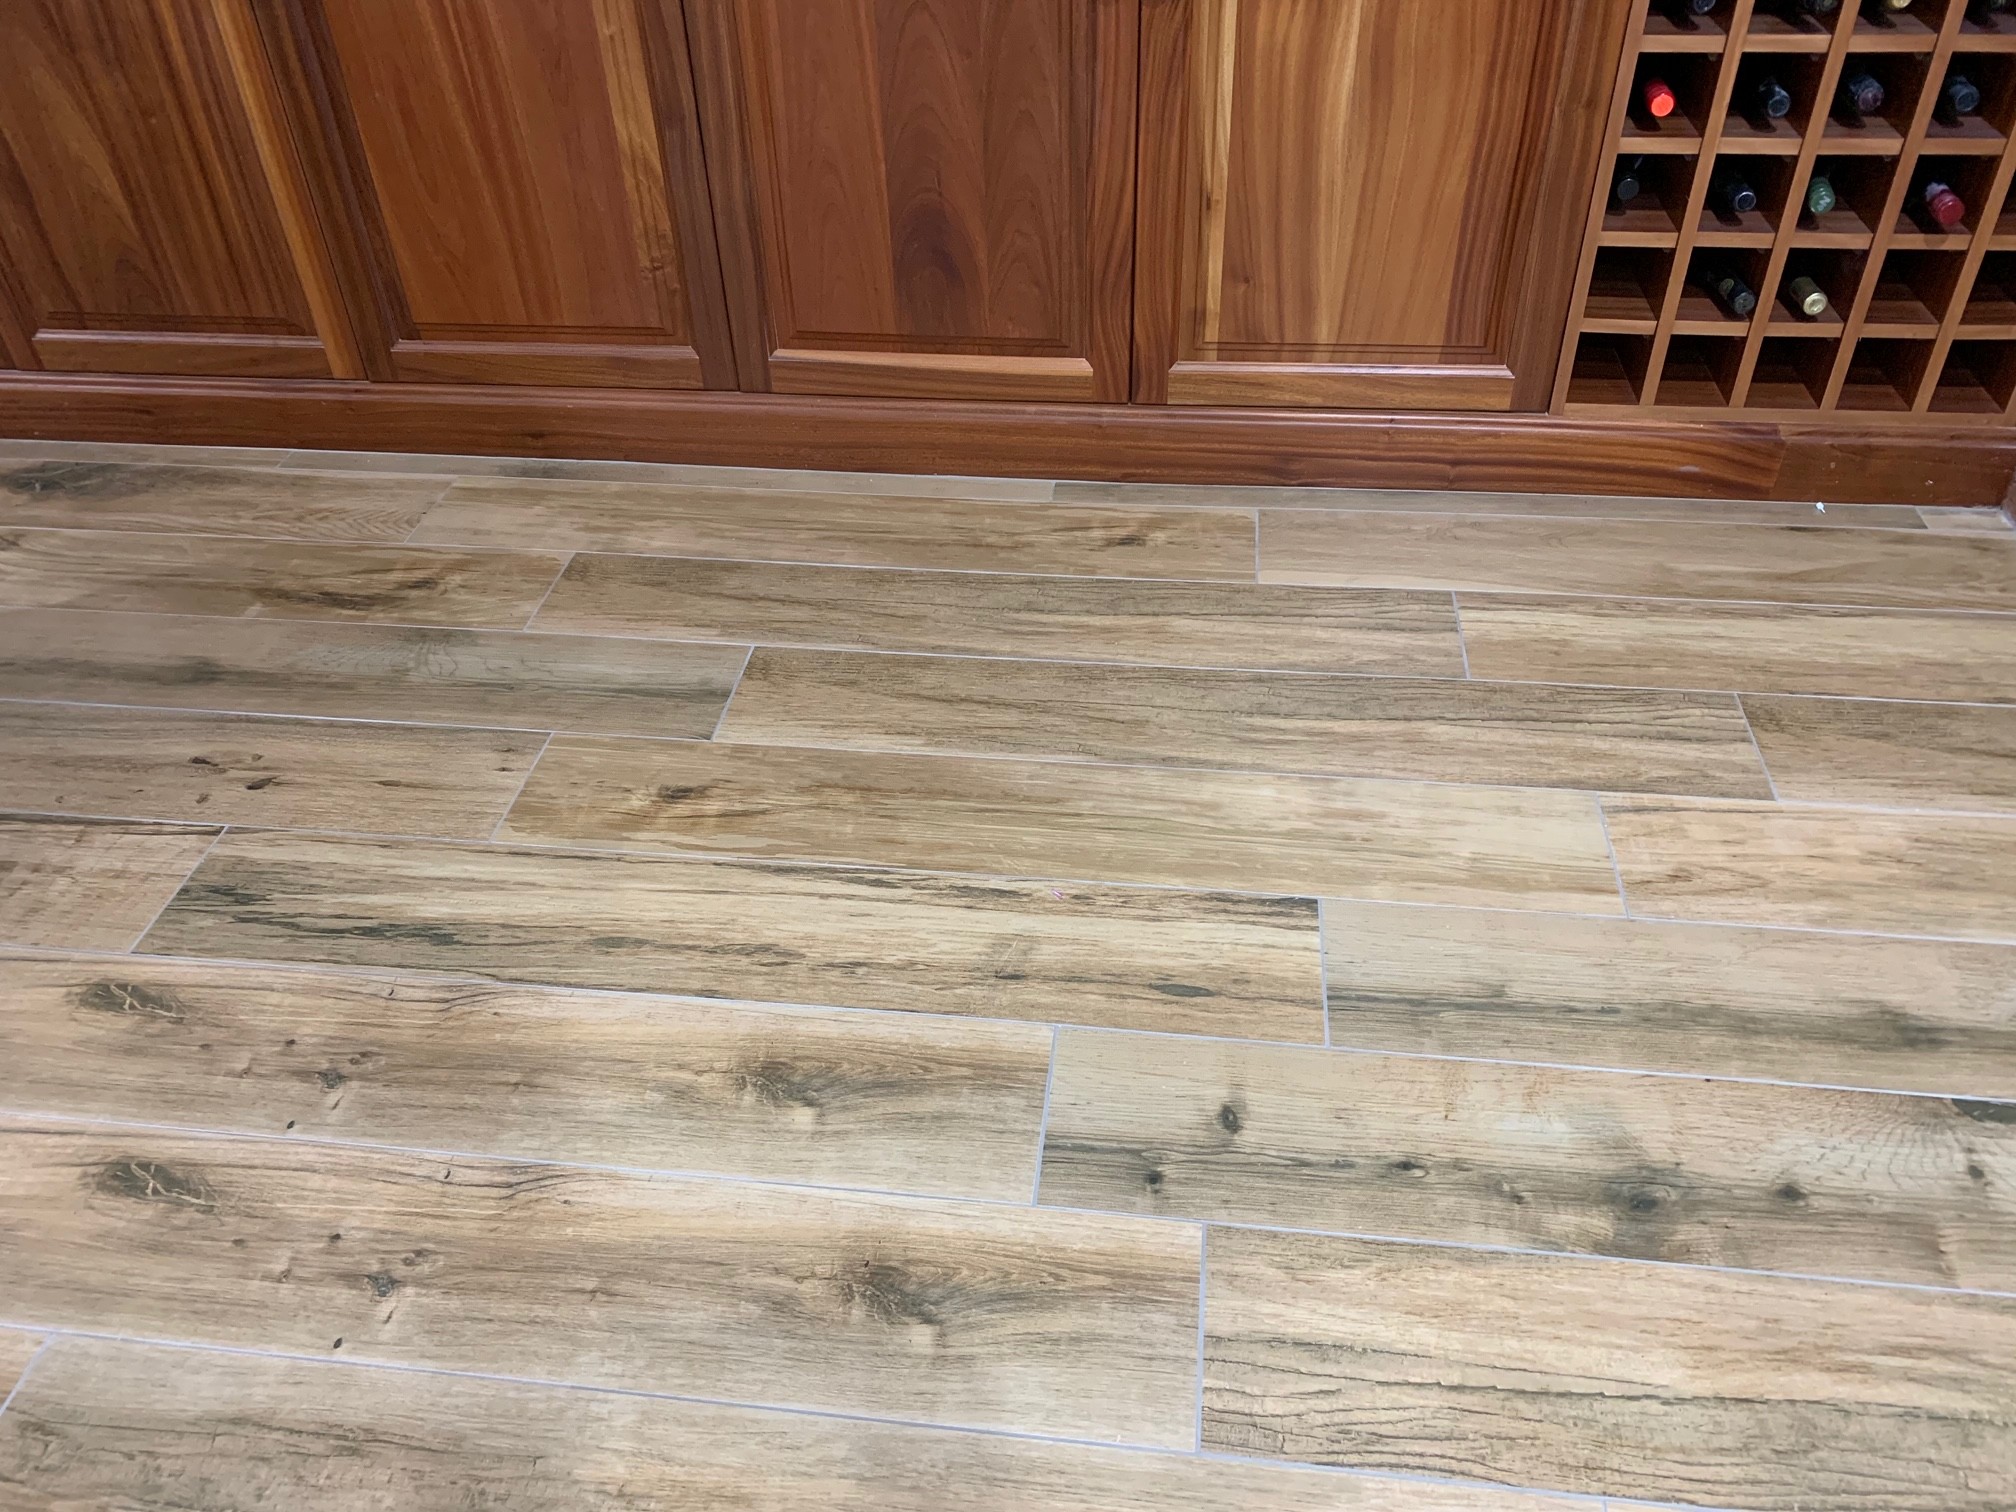 Natural wooden floor with undertile heating